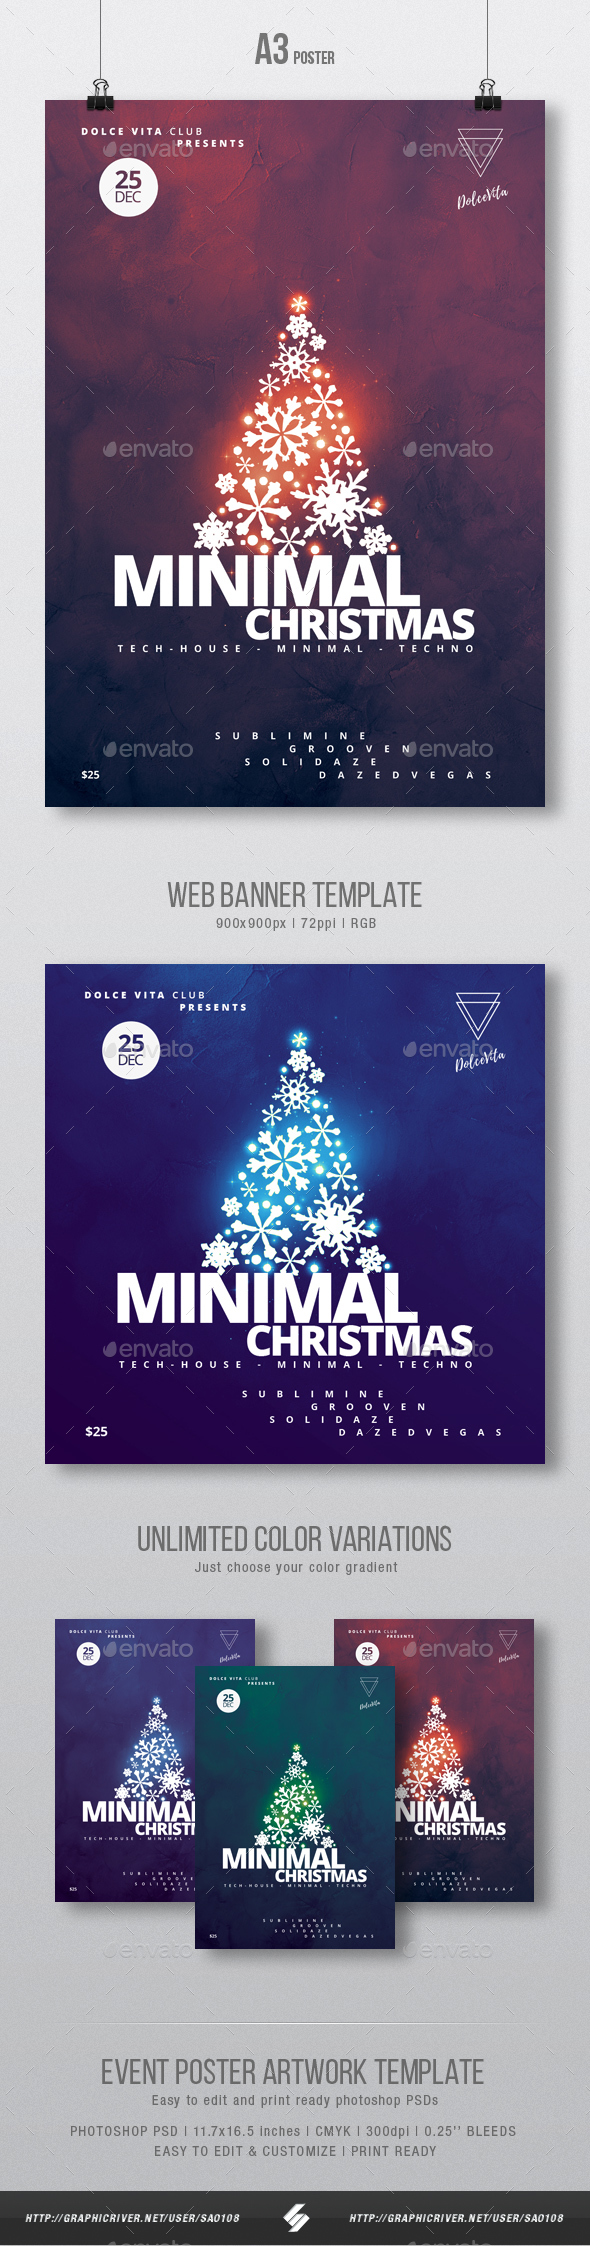 Minimal Christmas - Party Flyer / Poster Artwork Template A3 - Clubs & Parties Events